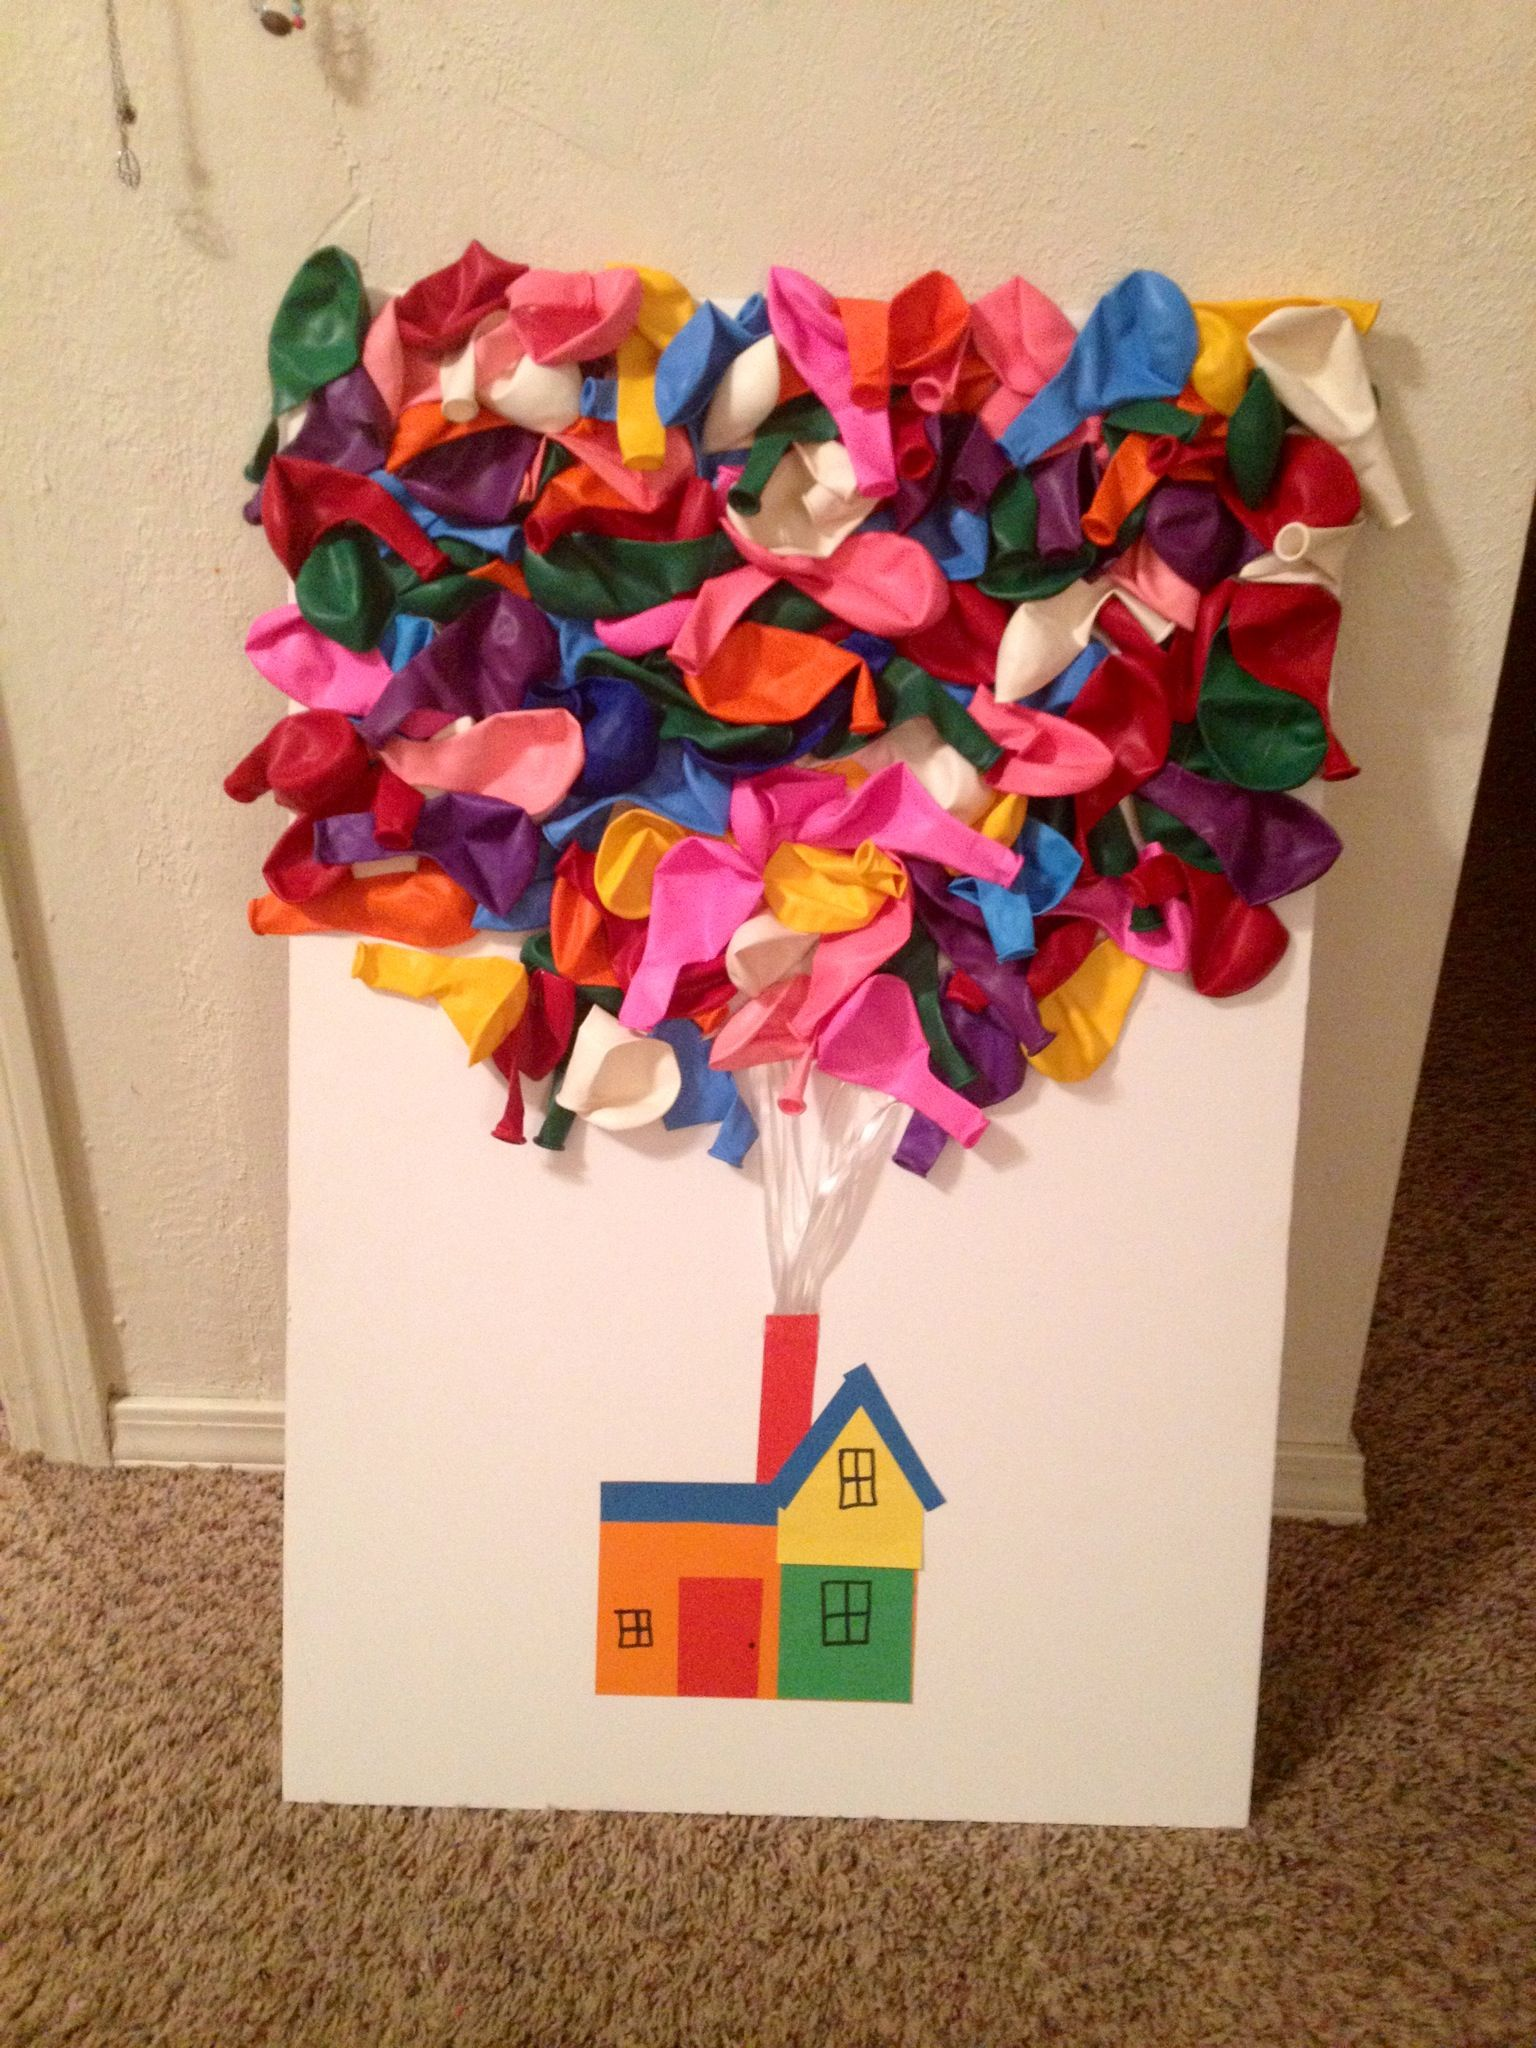 100 Days Of School Project There Are Exactly 100 Balloons Love 100th Day Of School Crafts 100 Days Of School Project Kindergartens 100 Day Of School Project